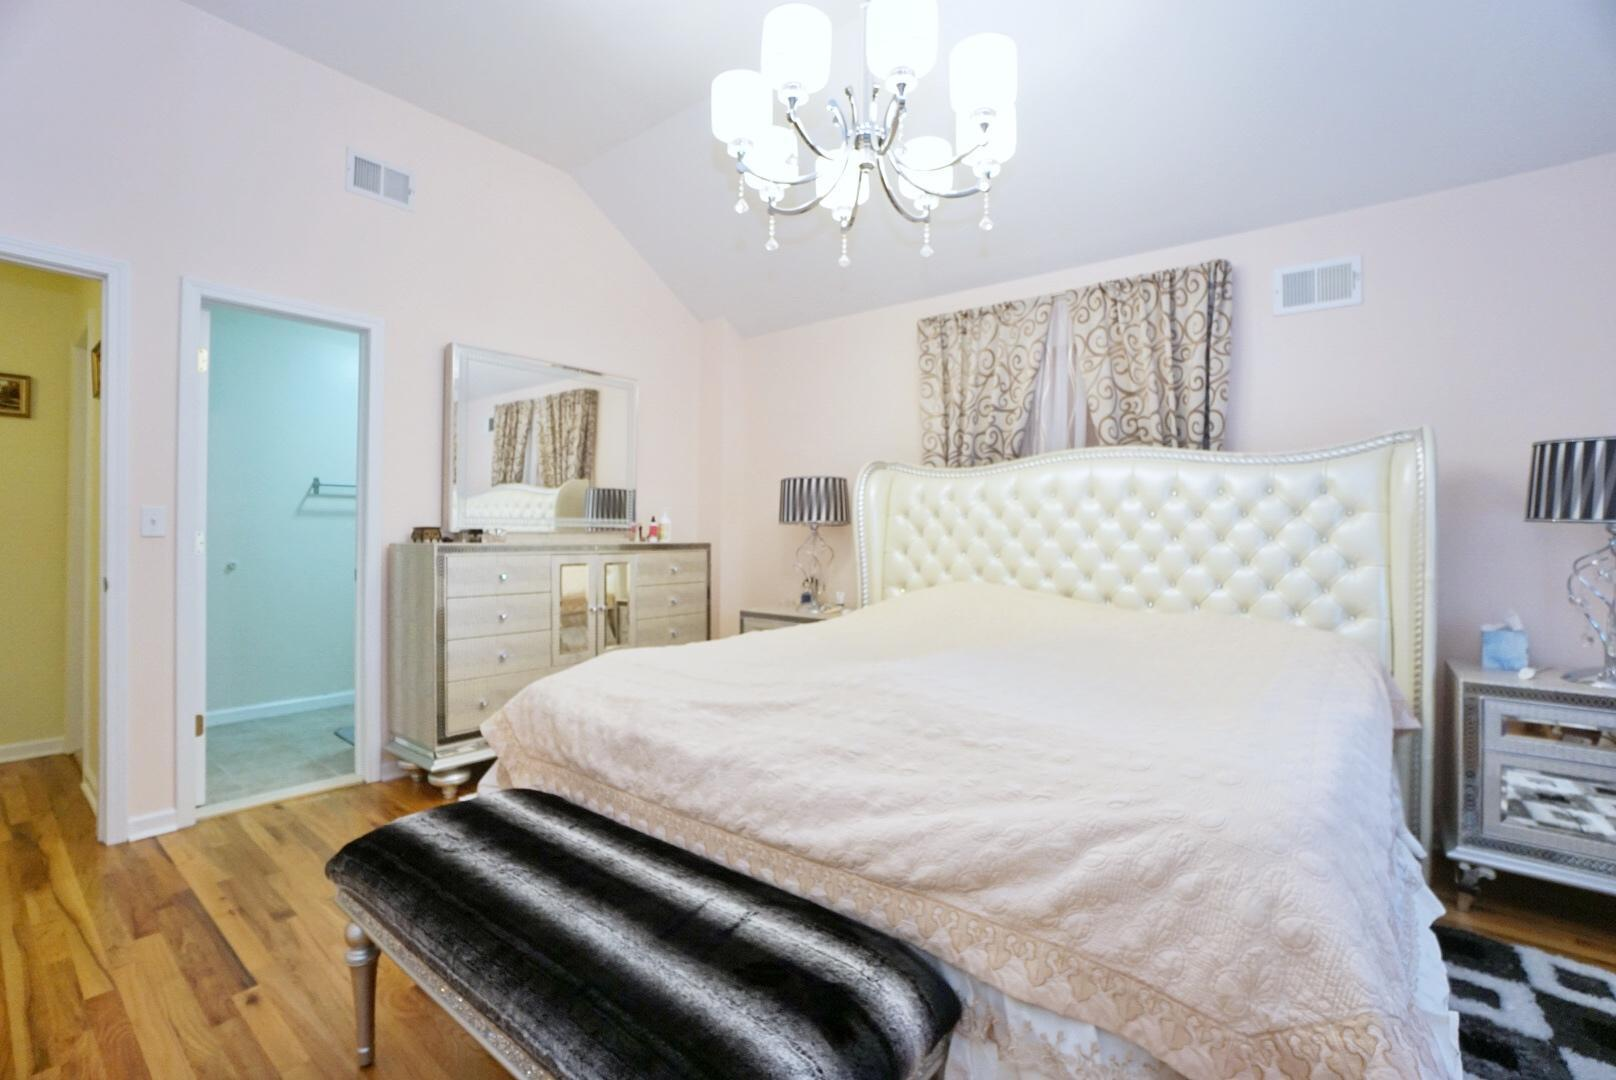 Single Family - Detached 171 Benziger Avenue  Staten Island, NY 10301, MLS-1145235-20